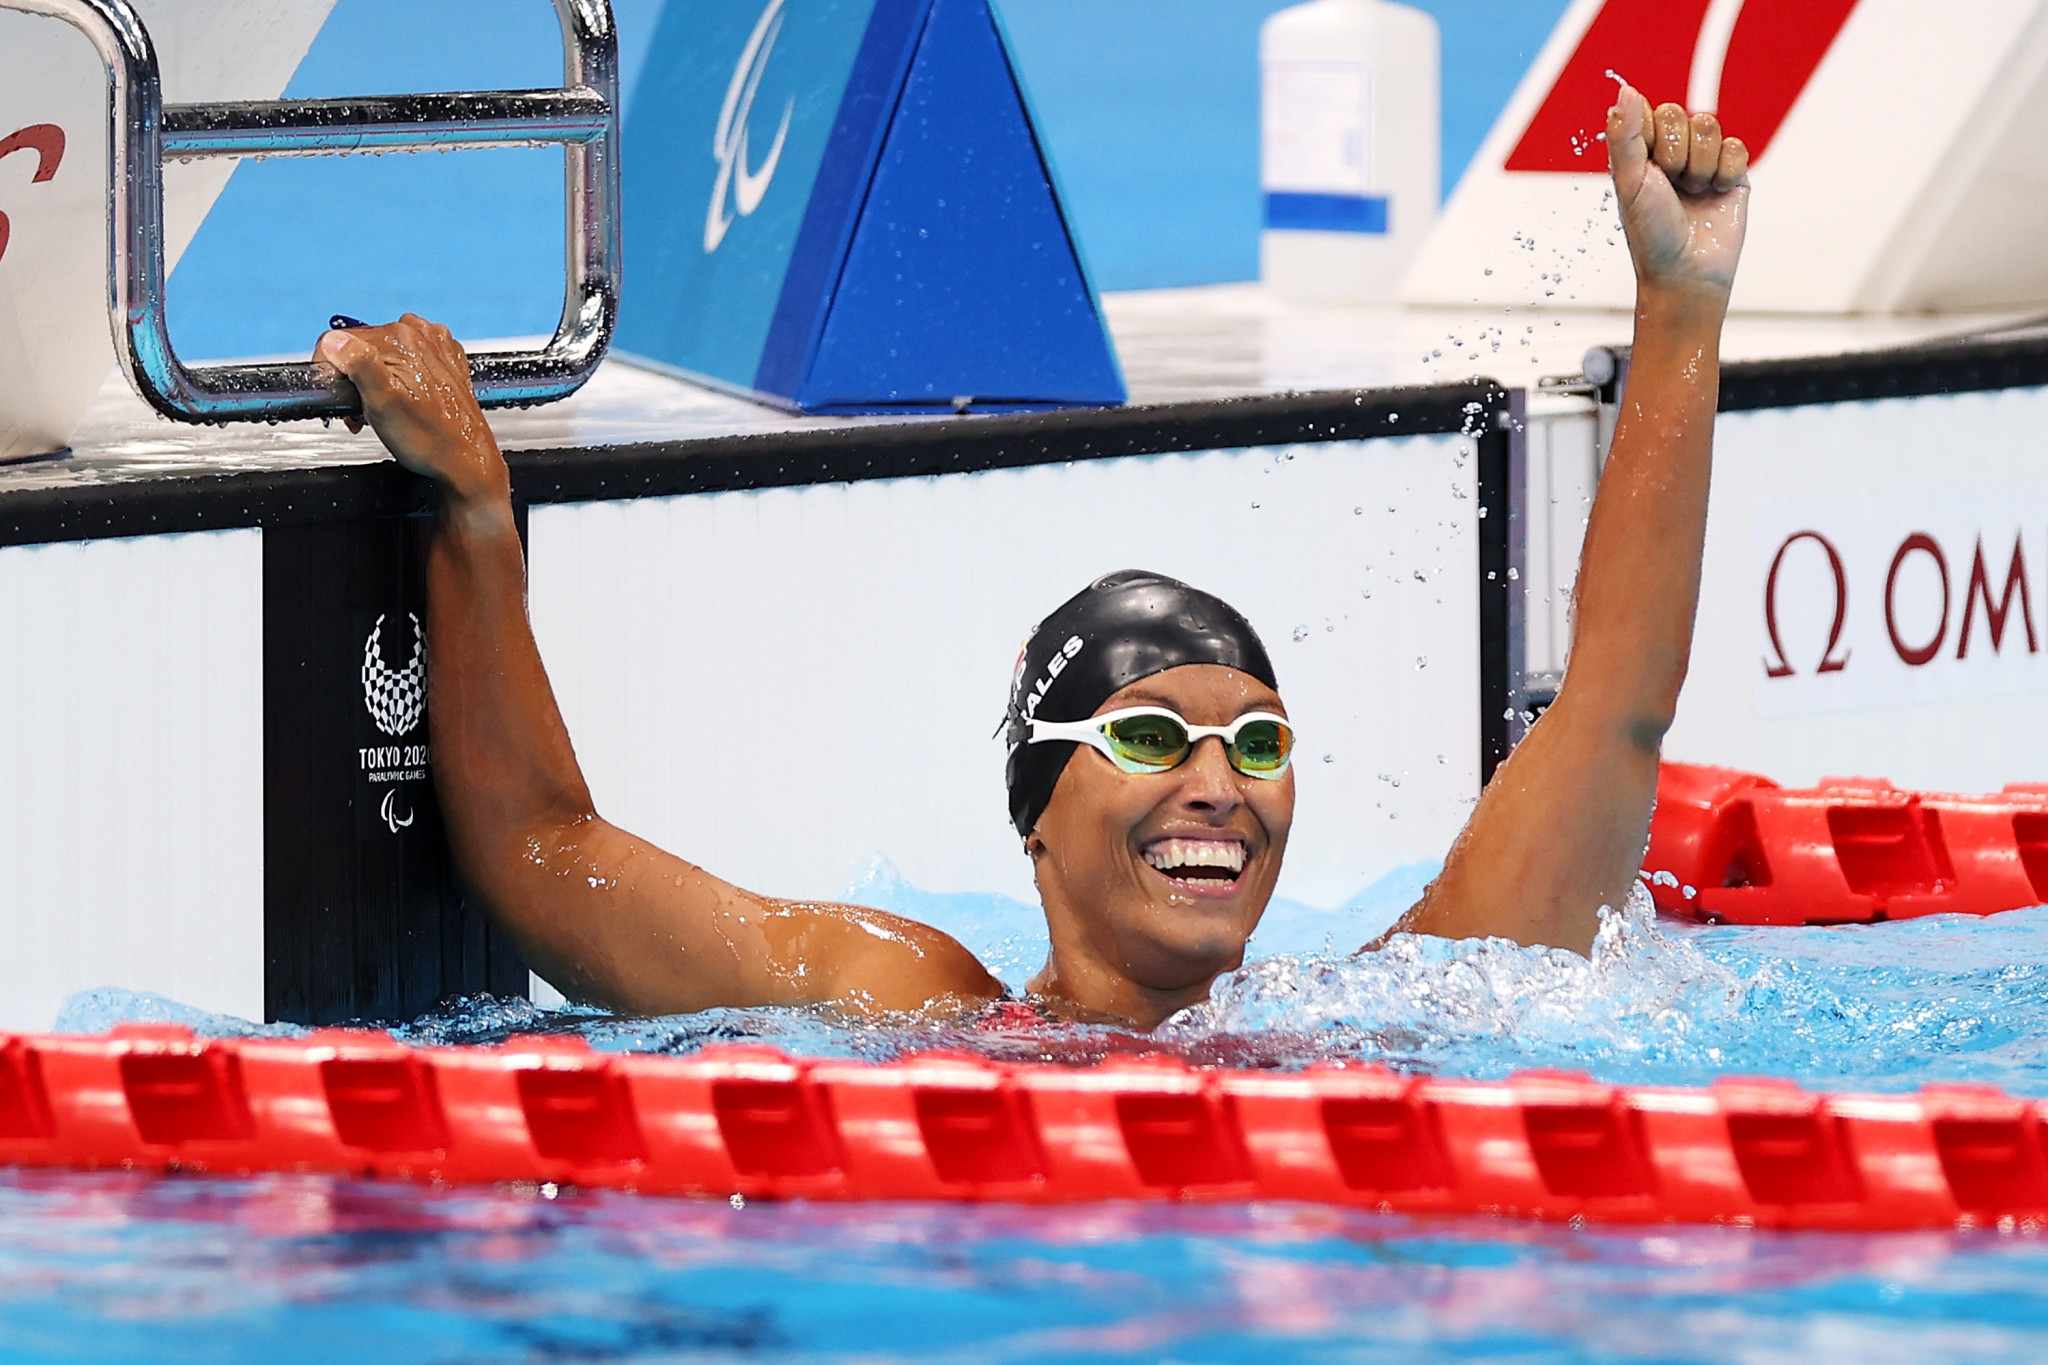 Teresa Perales won her 27th Paralympic medal in the women's S5 50m backstroke at Tokyo 2020 ©Getty Images